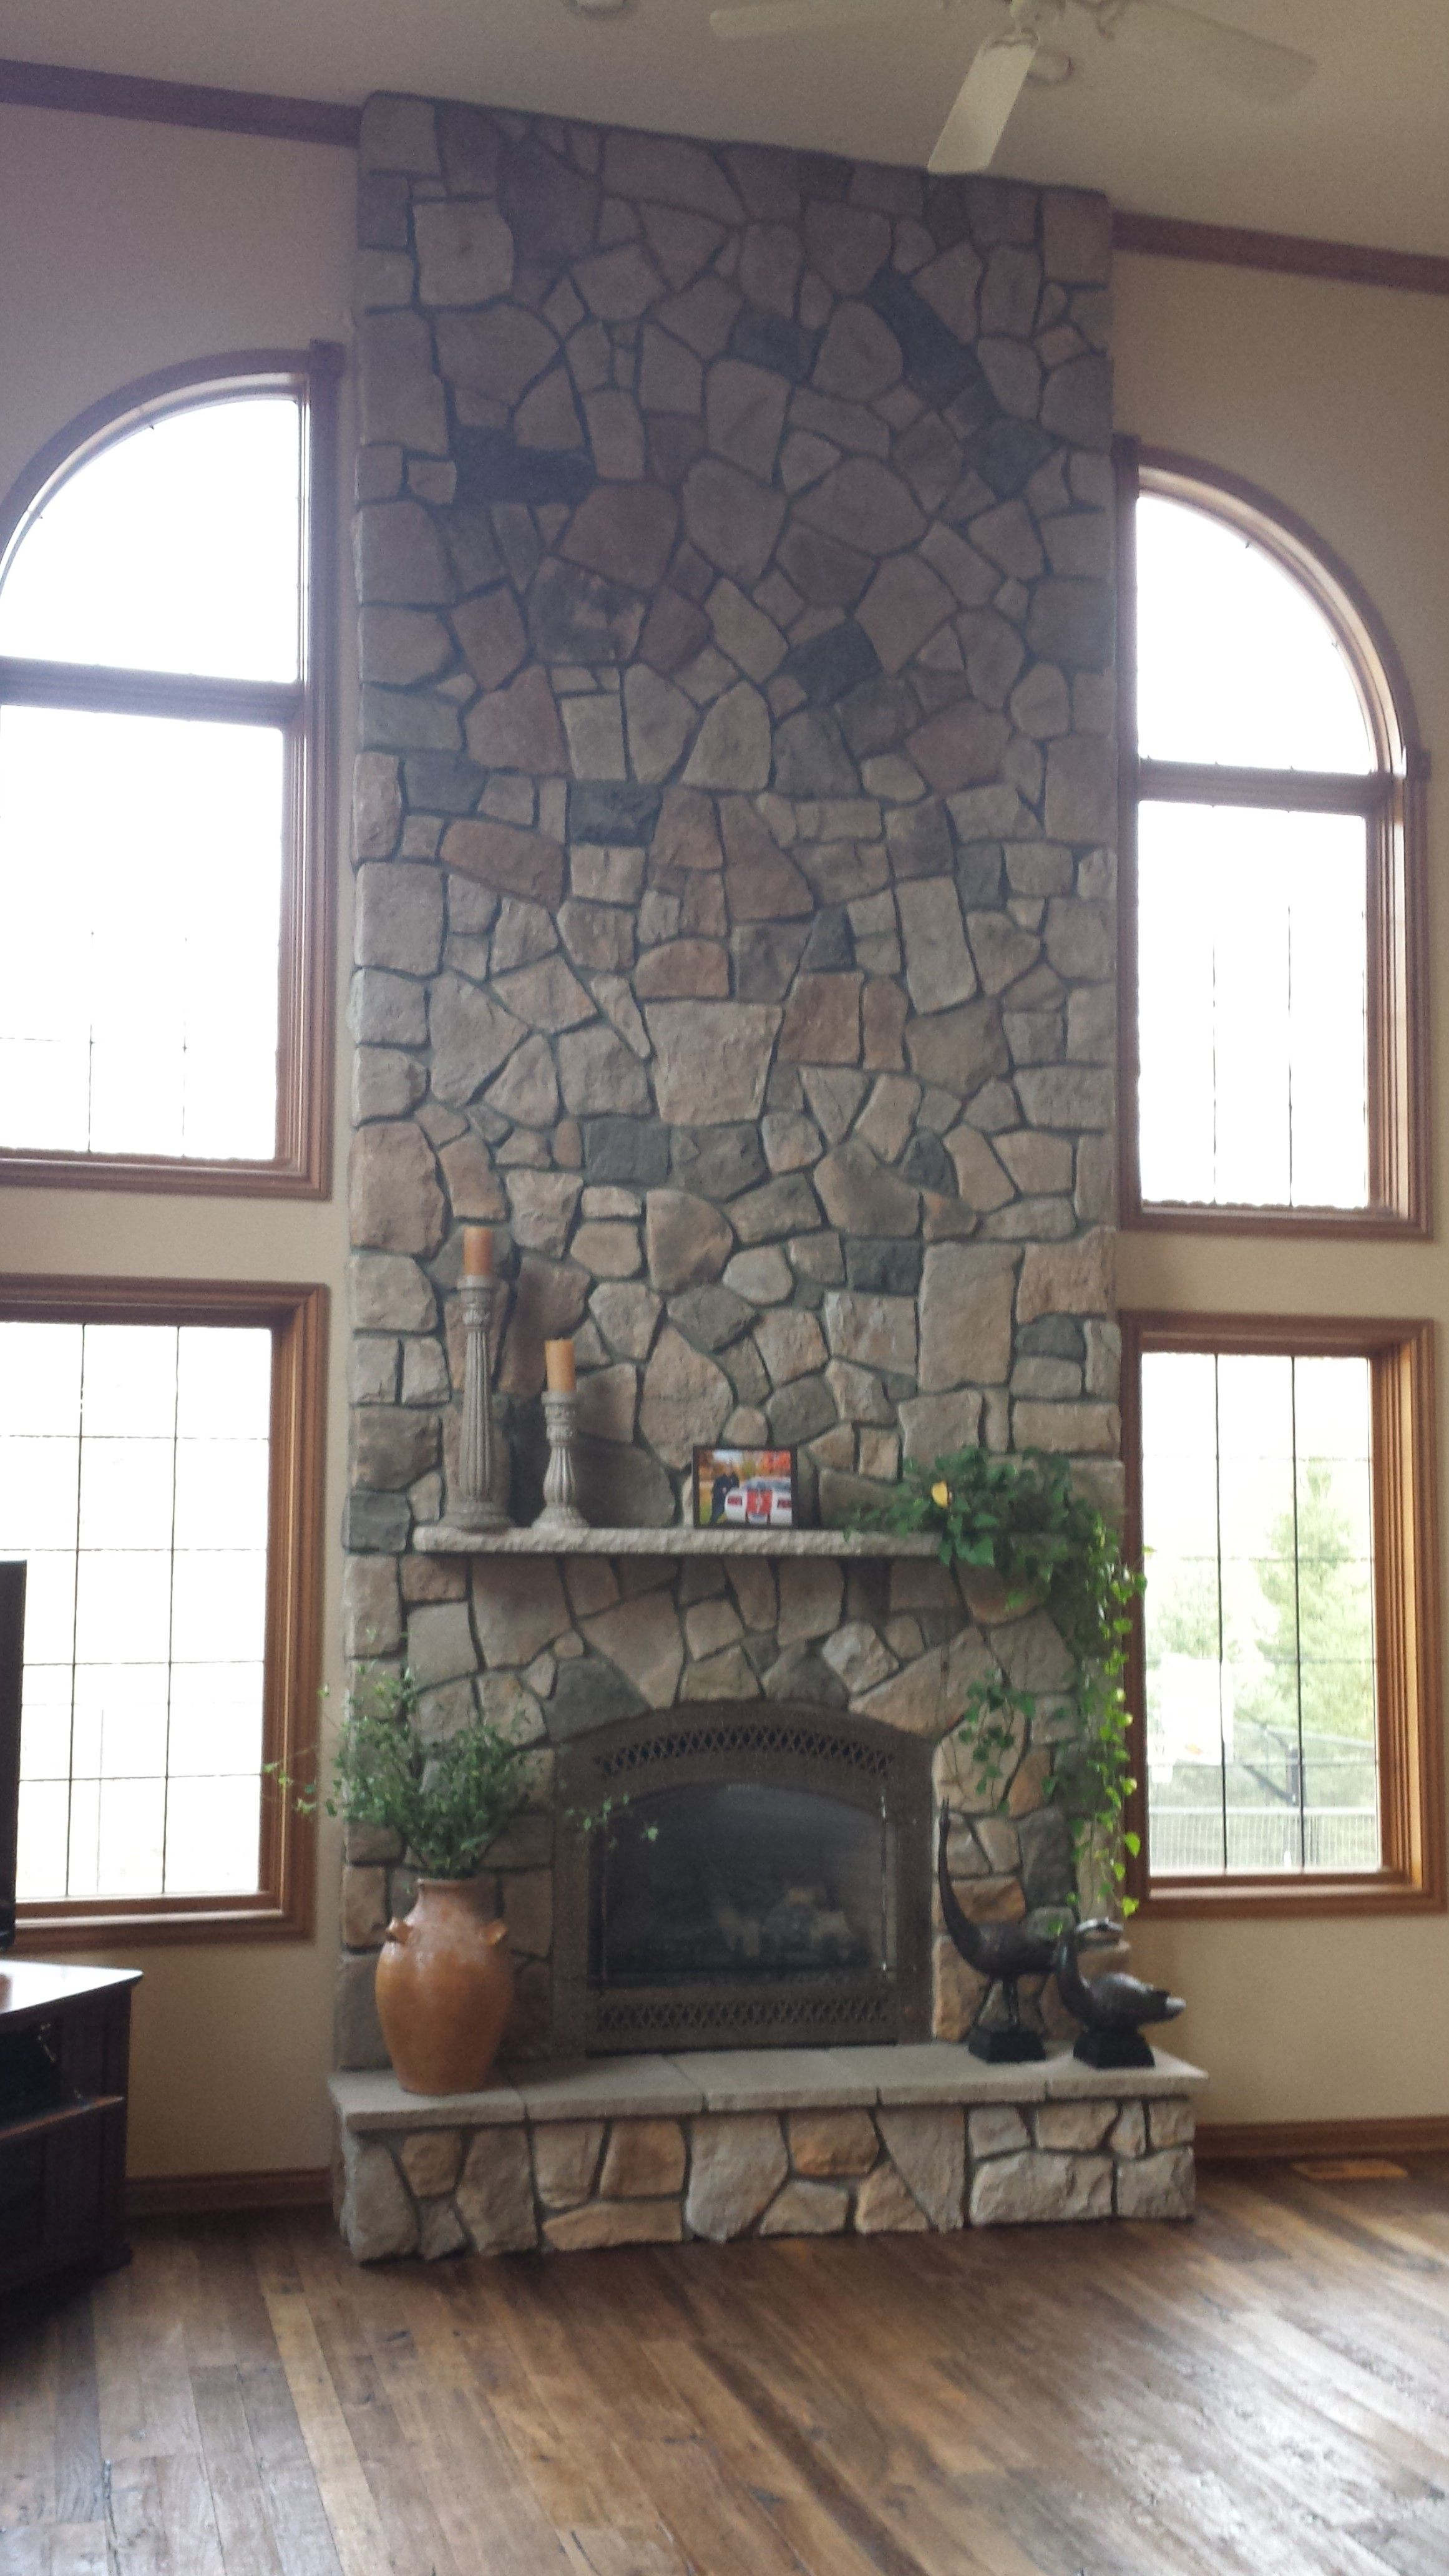 ideas fireplace inspiration fireplaces designs modern picture stone design unique amazing hardscape with